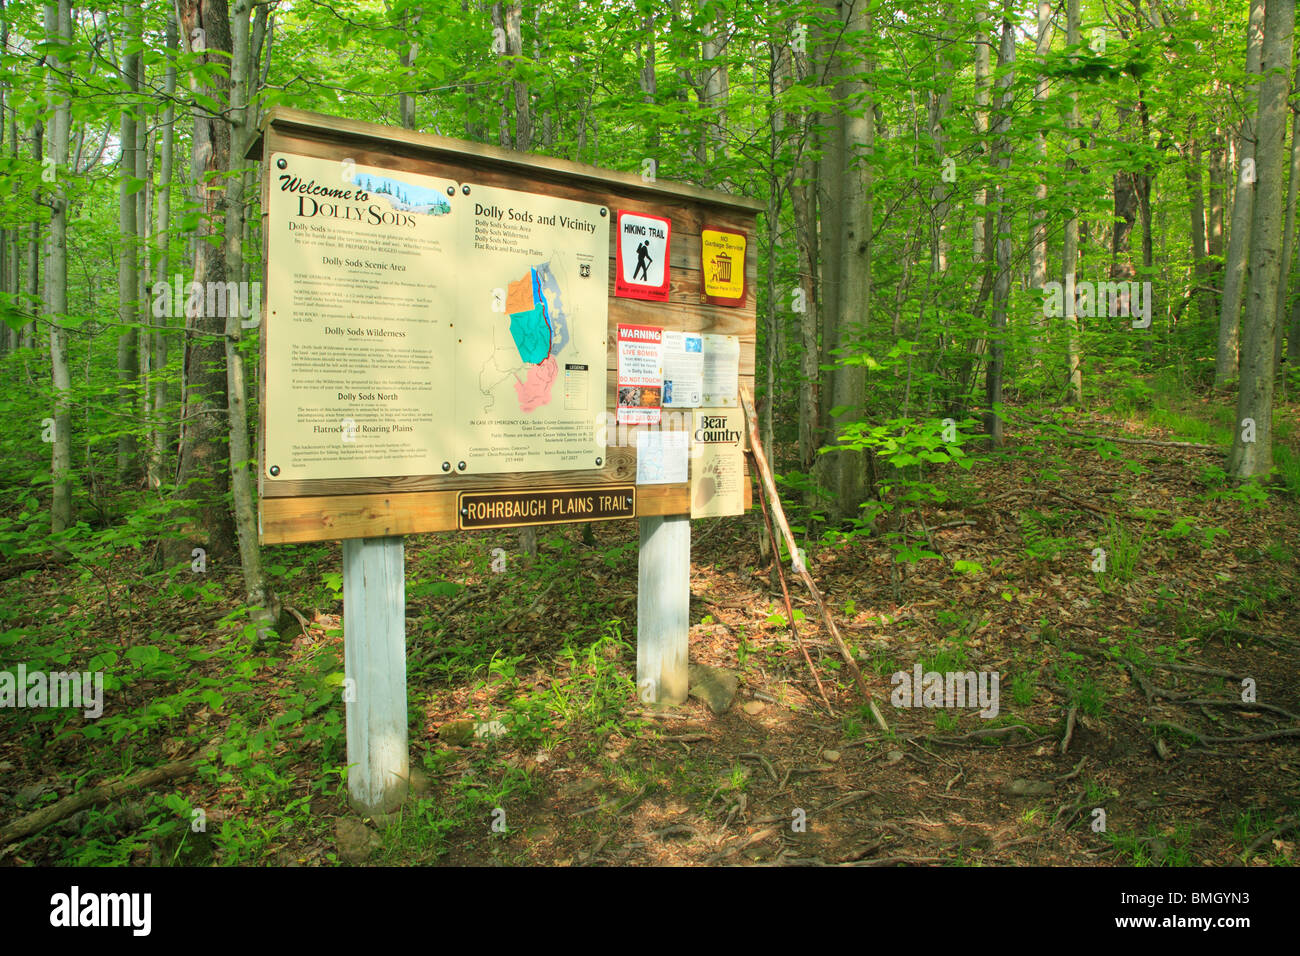 Sign Board at Rohrbaugh Trail Trailhead, Dolly Sods Wilderness Area, Hopeville, West Virginia - Stock Image